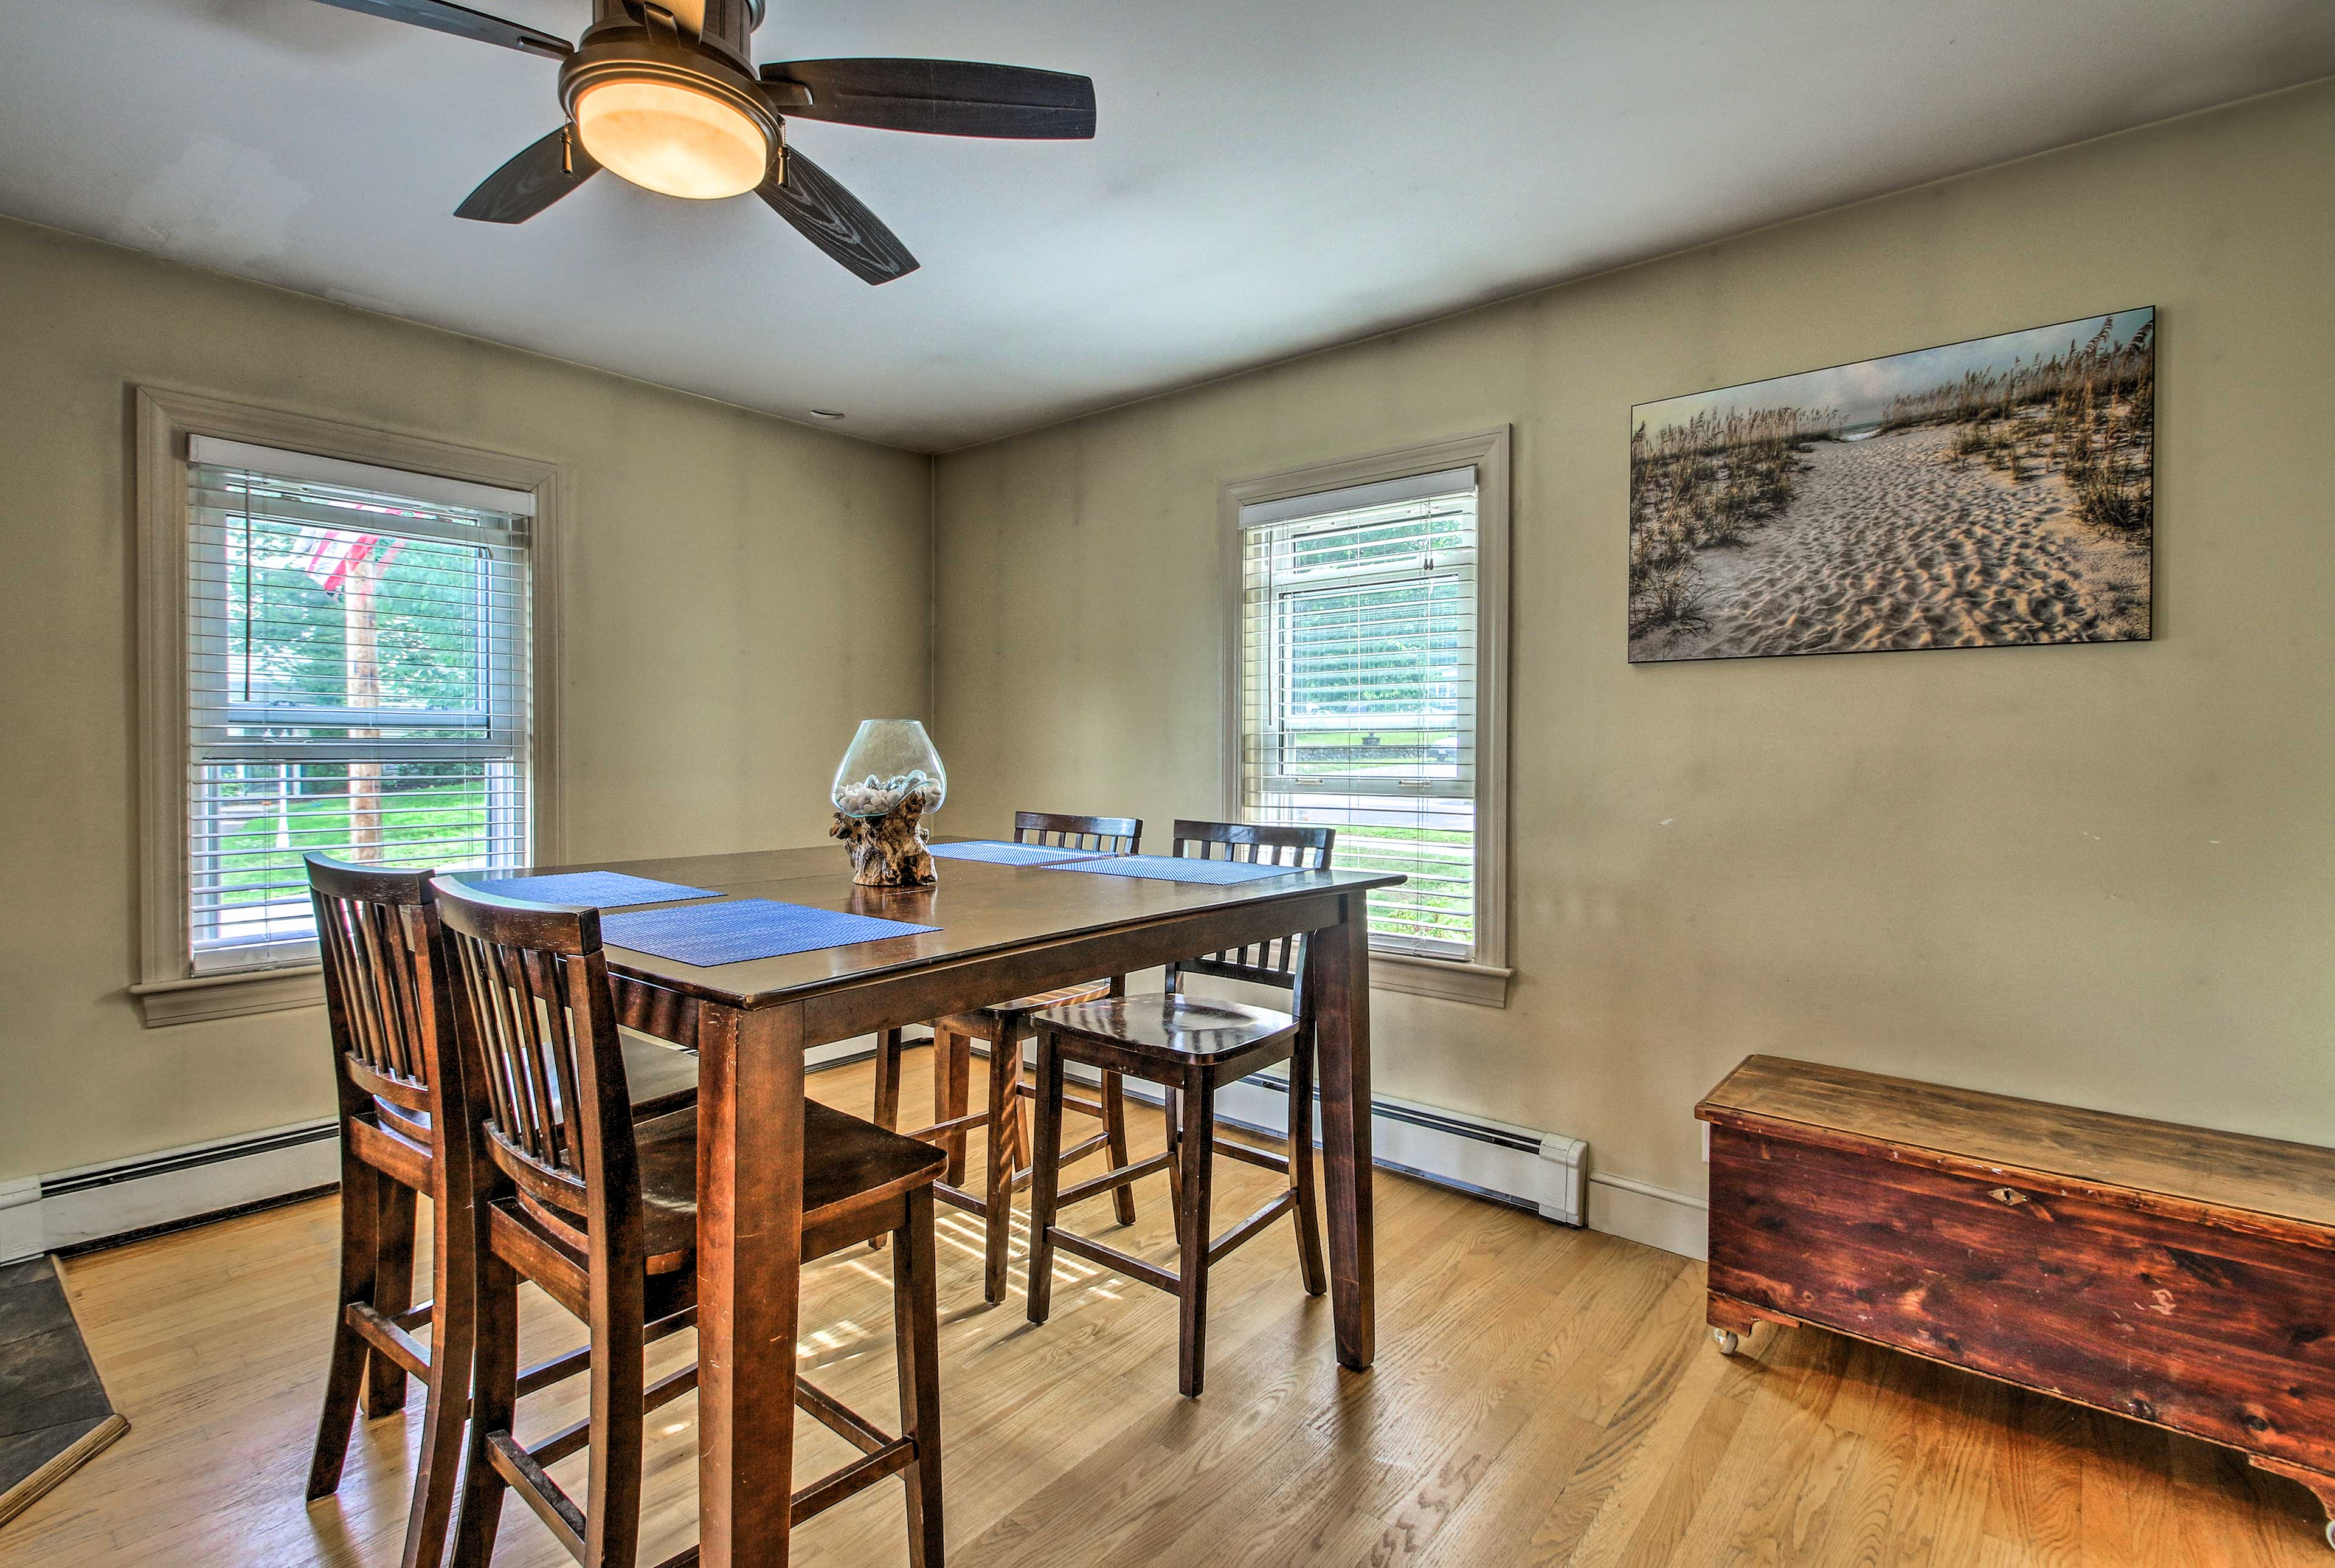 The large wood table is a great size to pull up chairs and dine together.